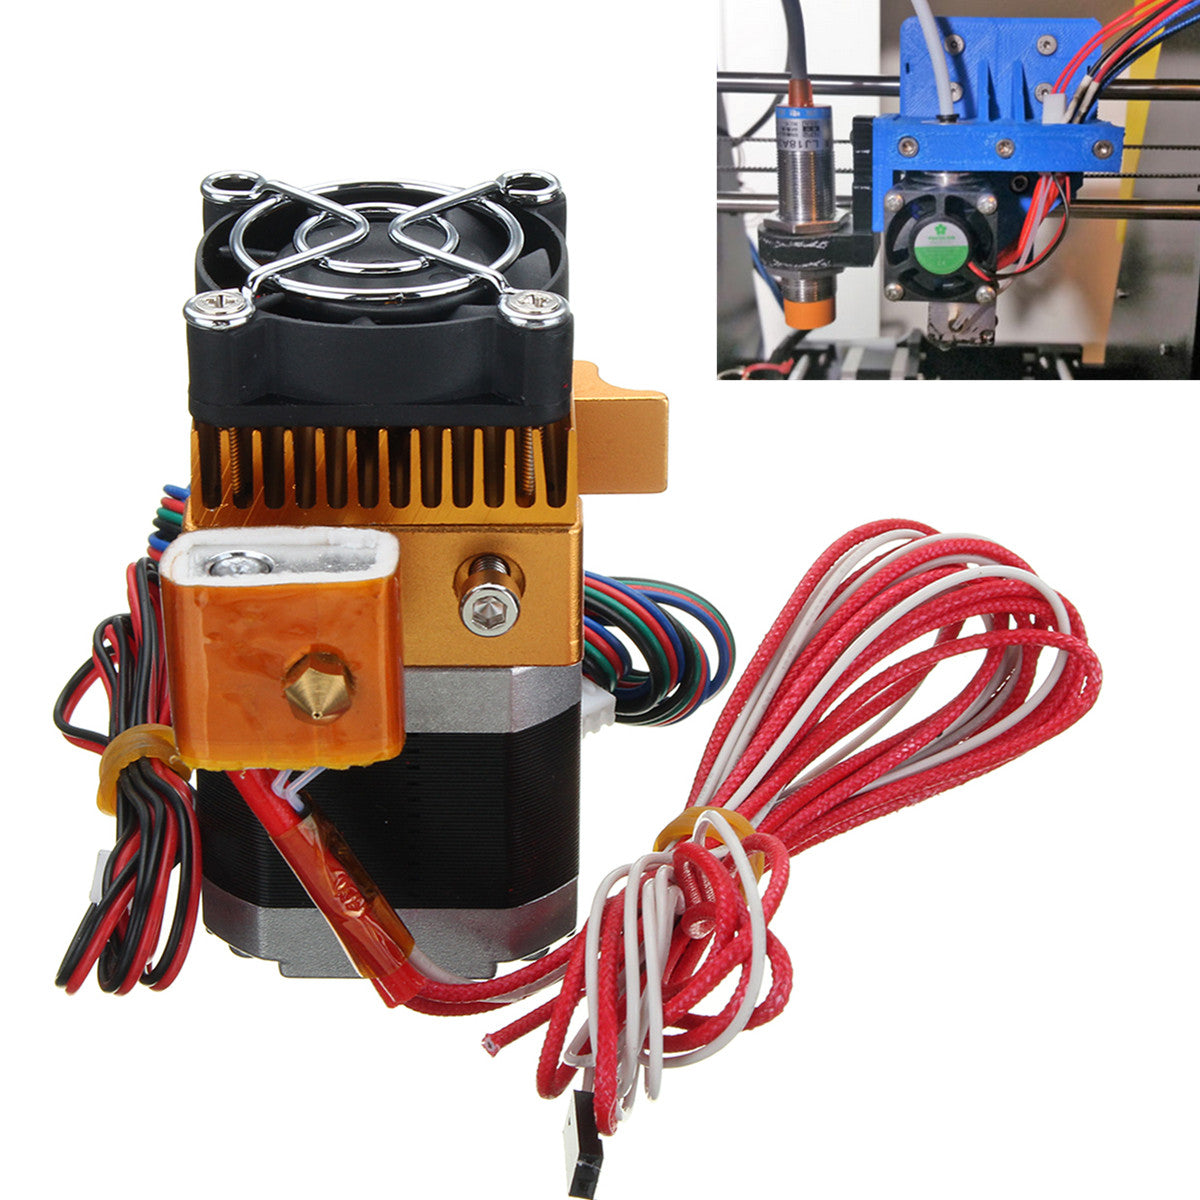 1.75mm 0.4mm Upgrade MK8 Extruder Nozzle Print Head Right-Left Hand For Prusa i3 3D Printer